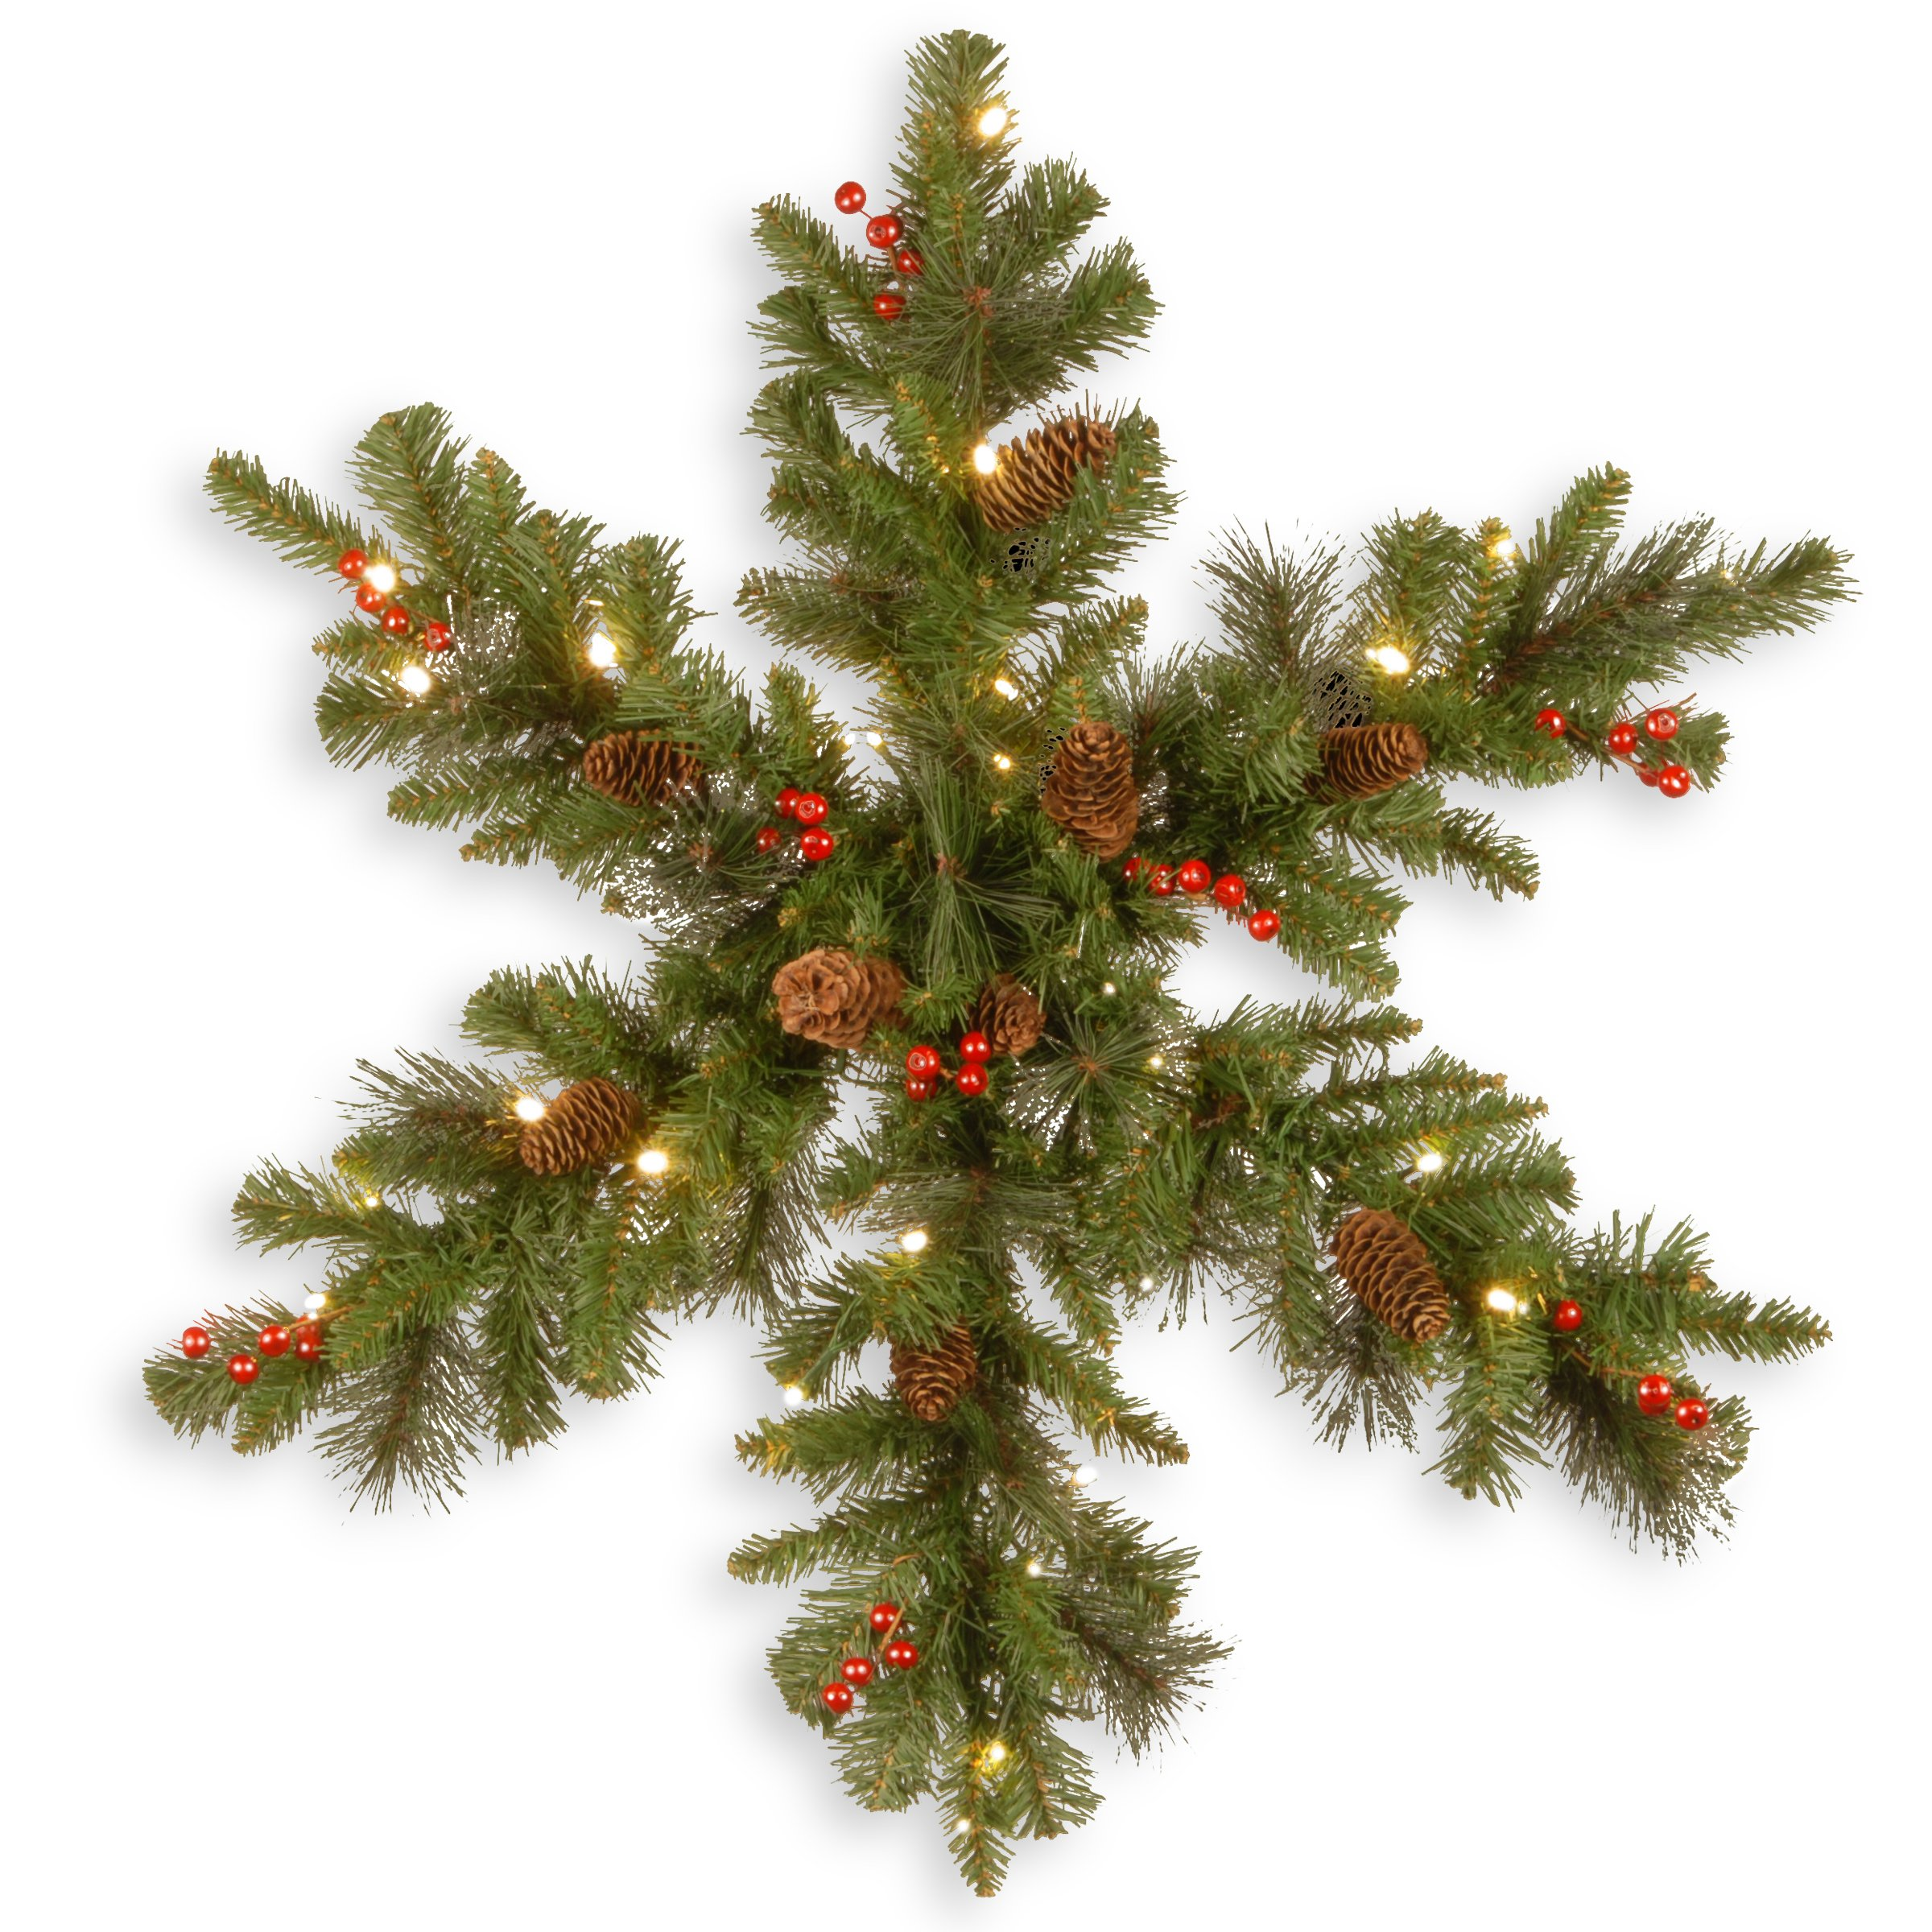 National Tree 32 Inch Crestwood Spruce Snowflake with 9 Cones, Glitter, 9 Red Berries, Silver Bristle and 35 White Battery Operated LED Lights with Timer (CW7-306-32SB4-1)